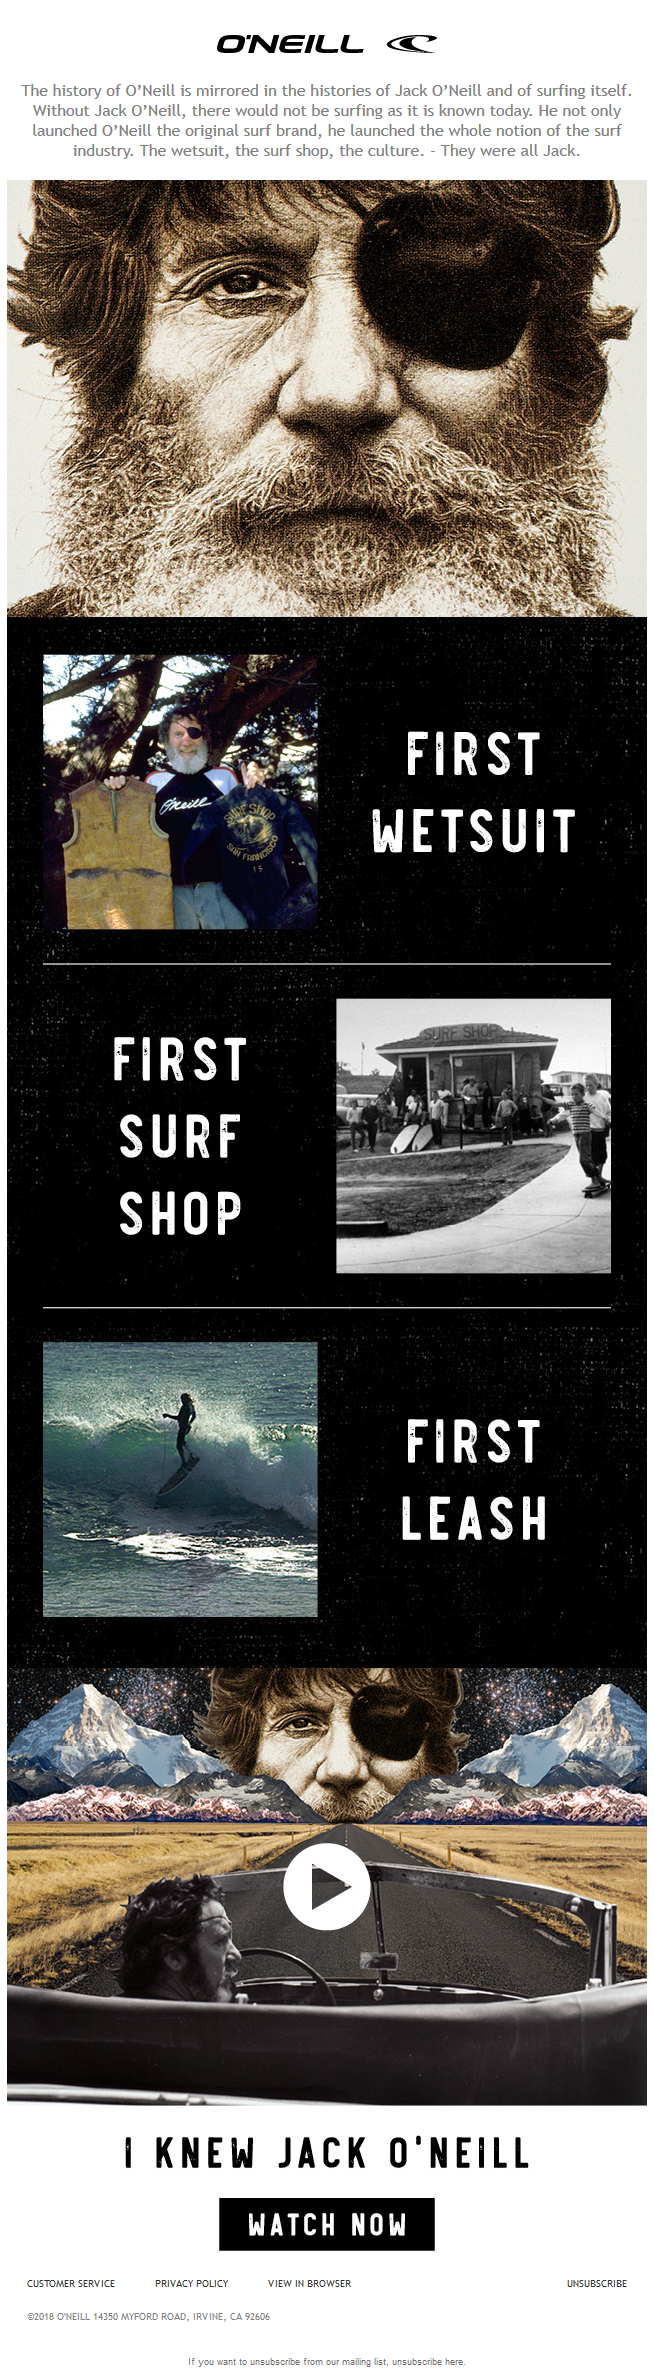 What Makes O'Neill The Original American Surf Brand?